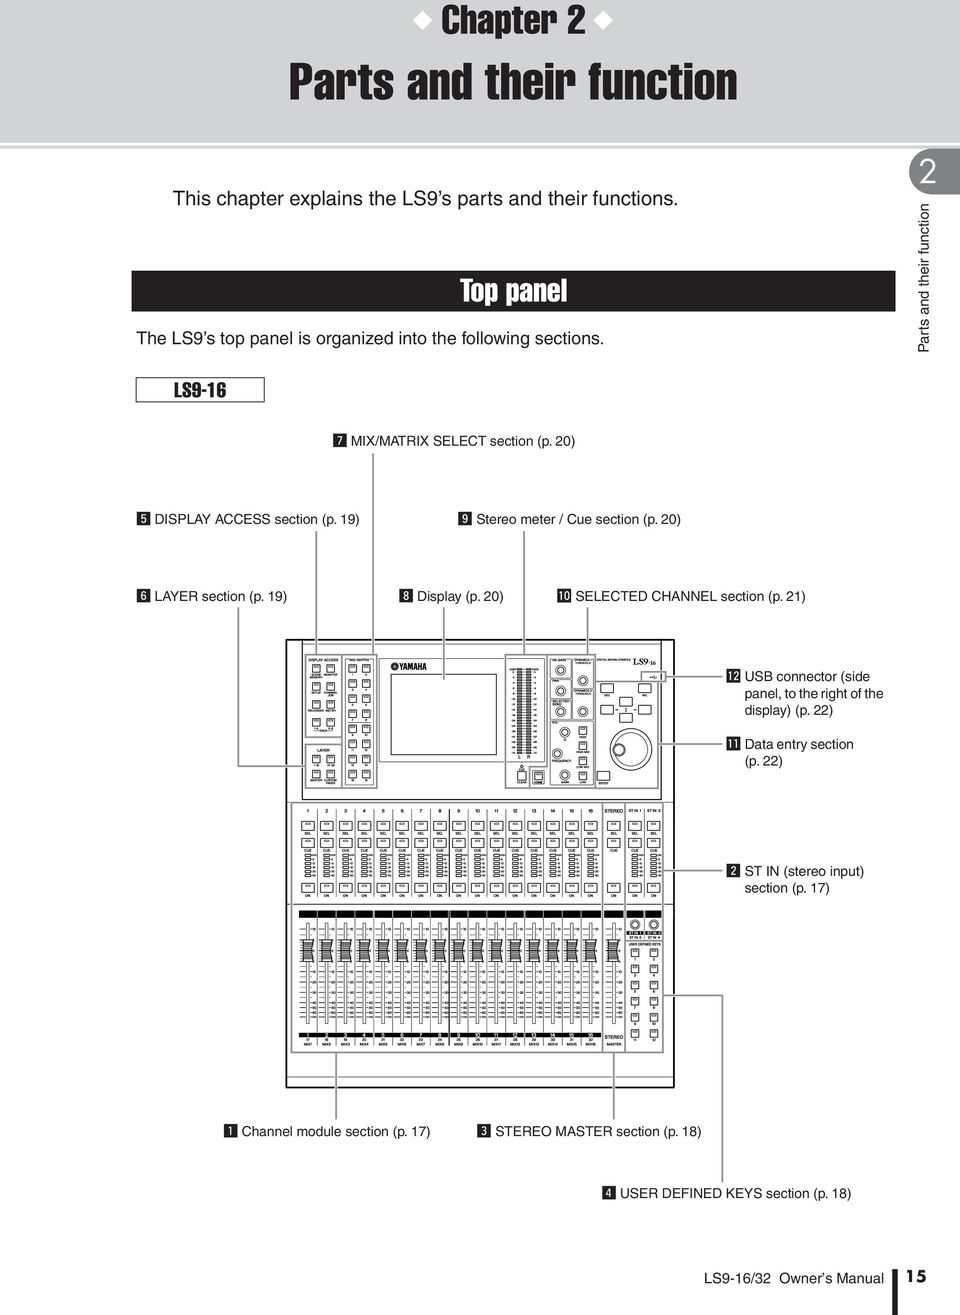 20) b DISPLAY ACCESS section (p. 19). Stereo meter / Cue section (p. 20) n LAYER section (p. 19), Display (p. 20) 0 SELECTED CHANNEL section (p.